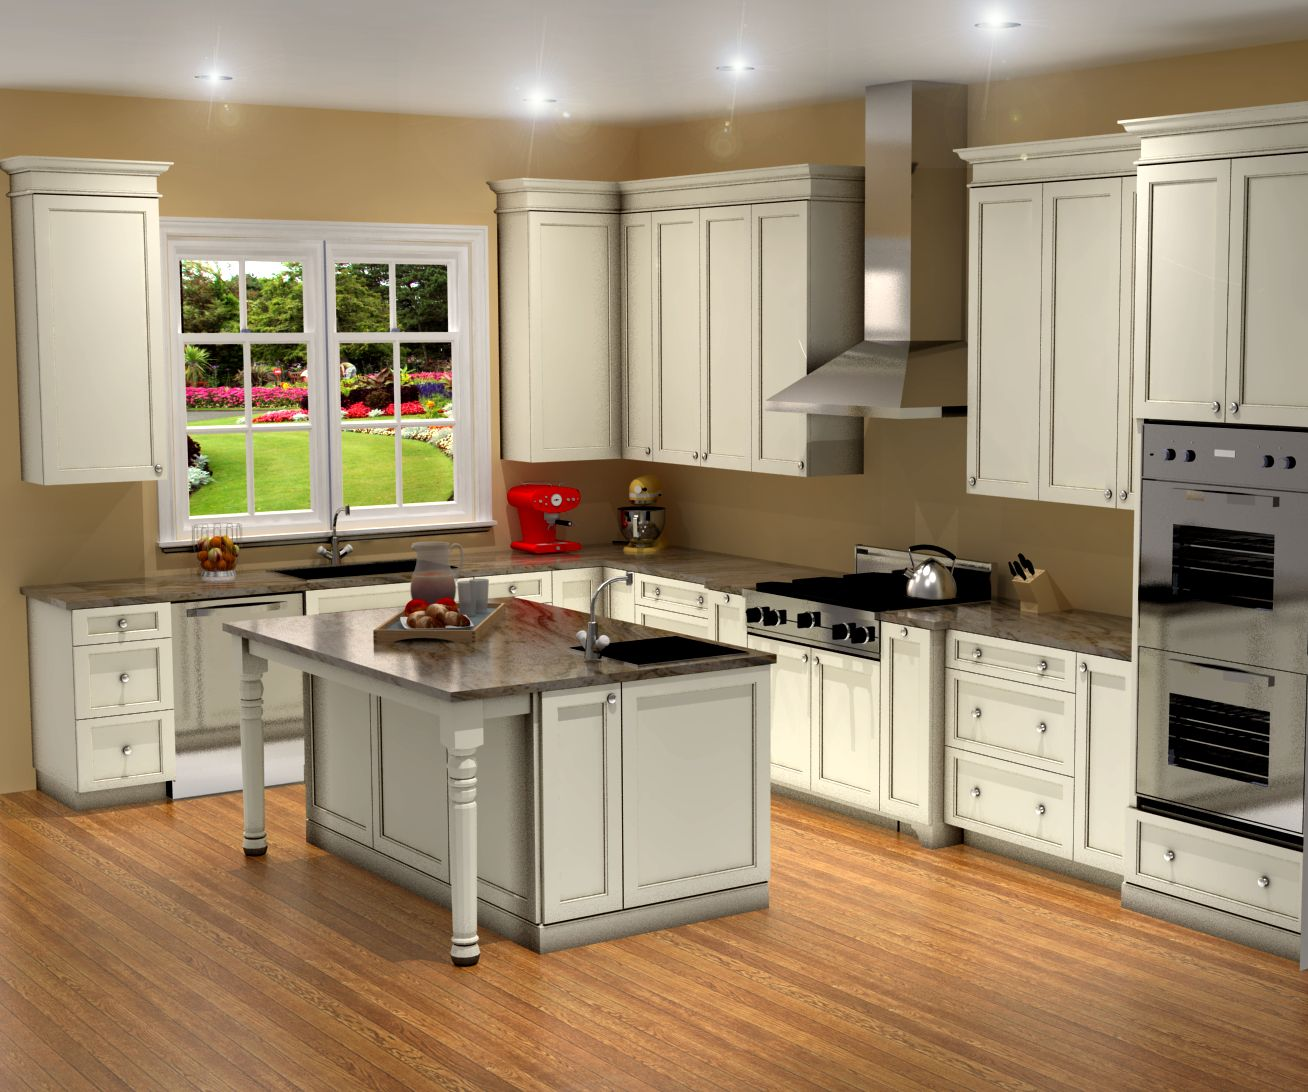 Traditional white kitchen design 3d rendering nick for Kitchen style design